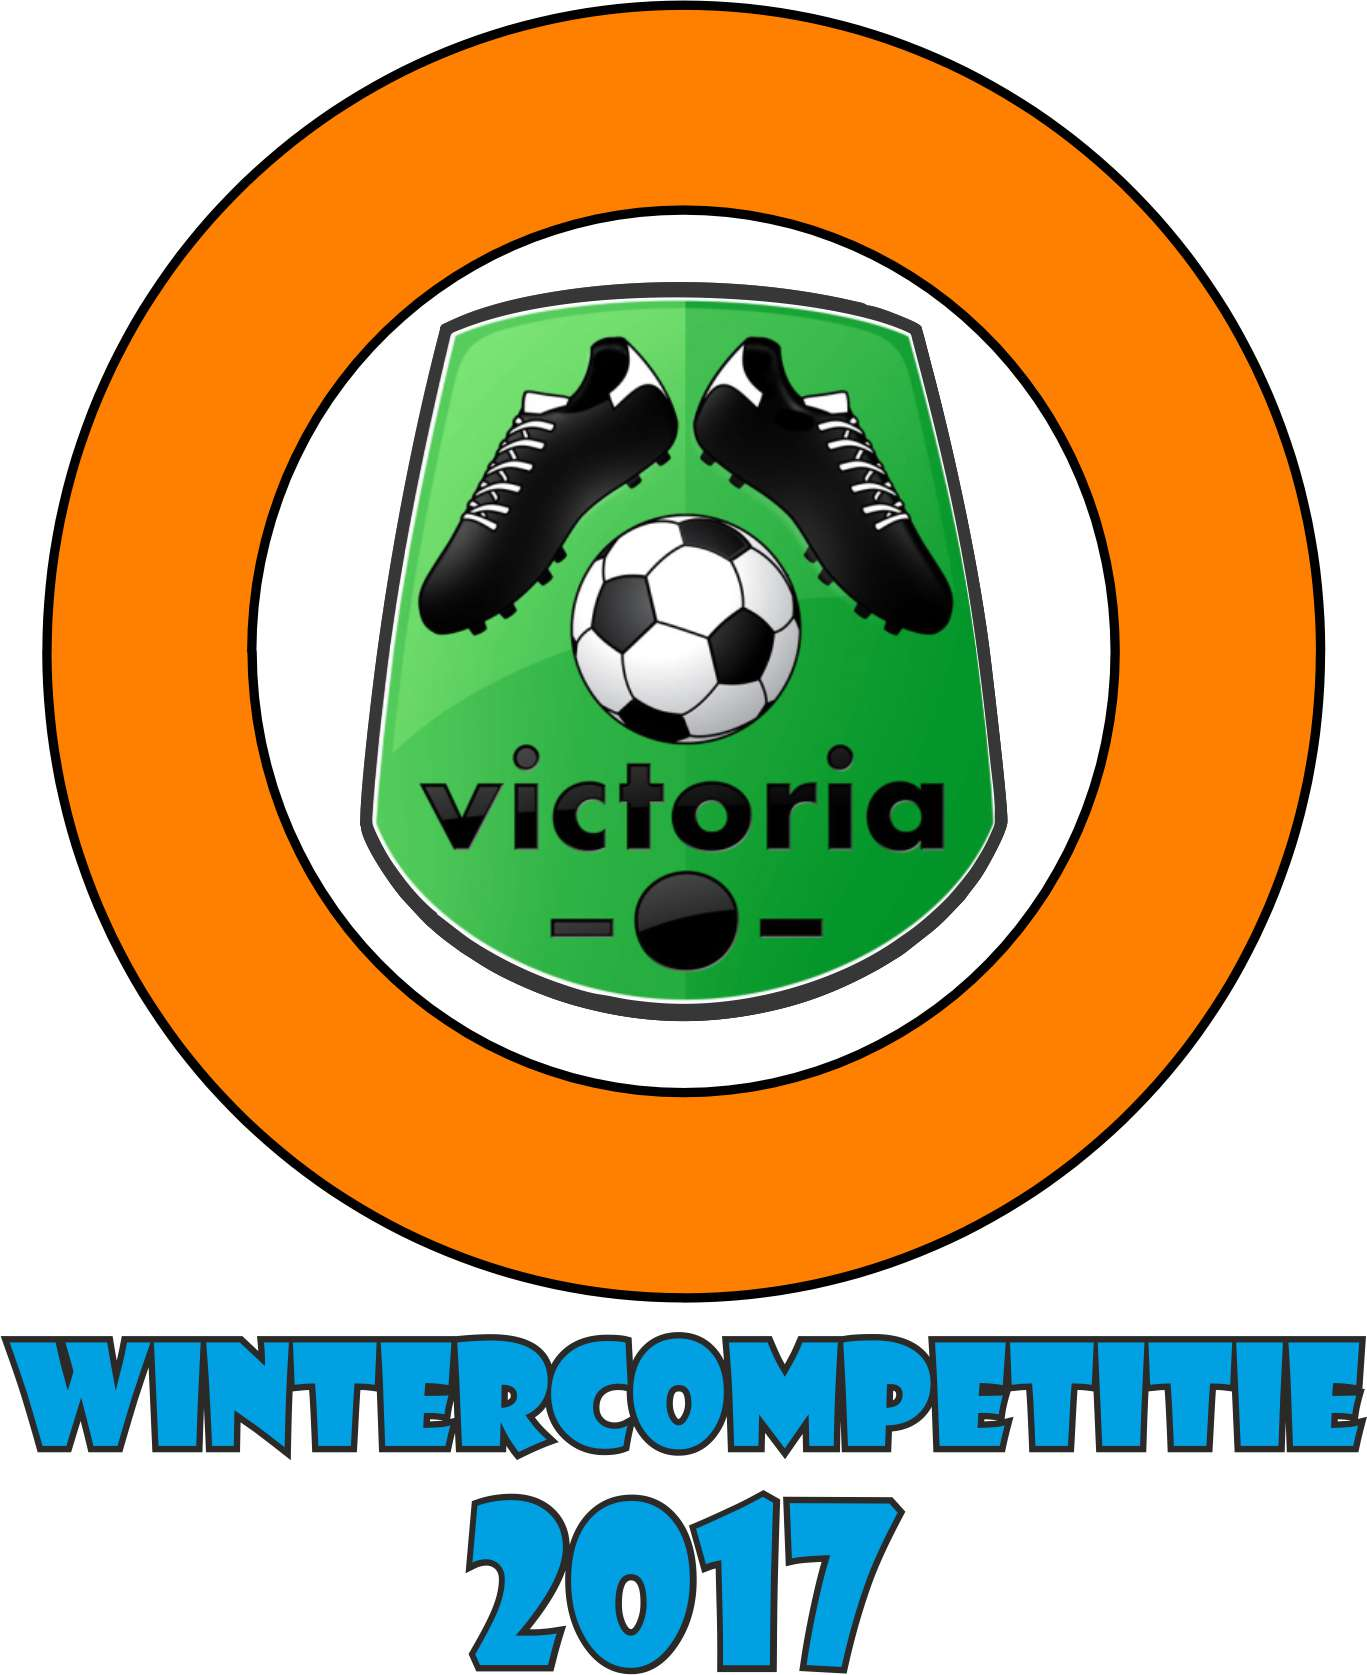 wintercompetitie-2017